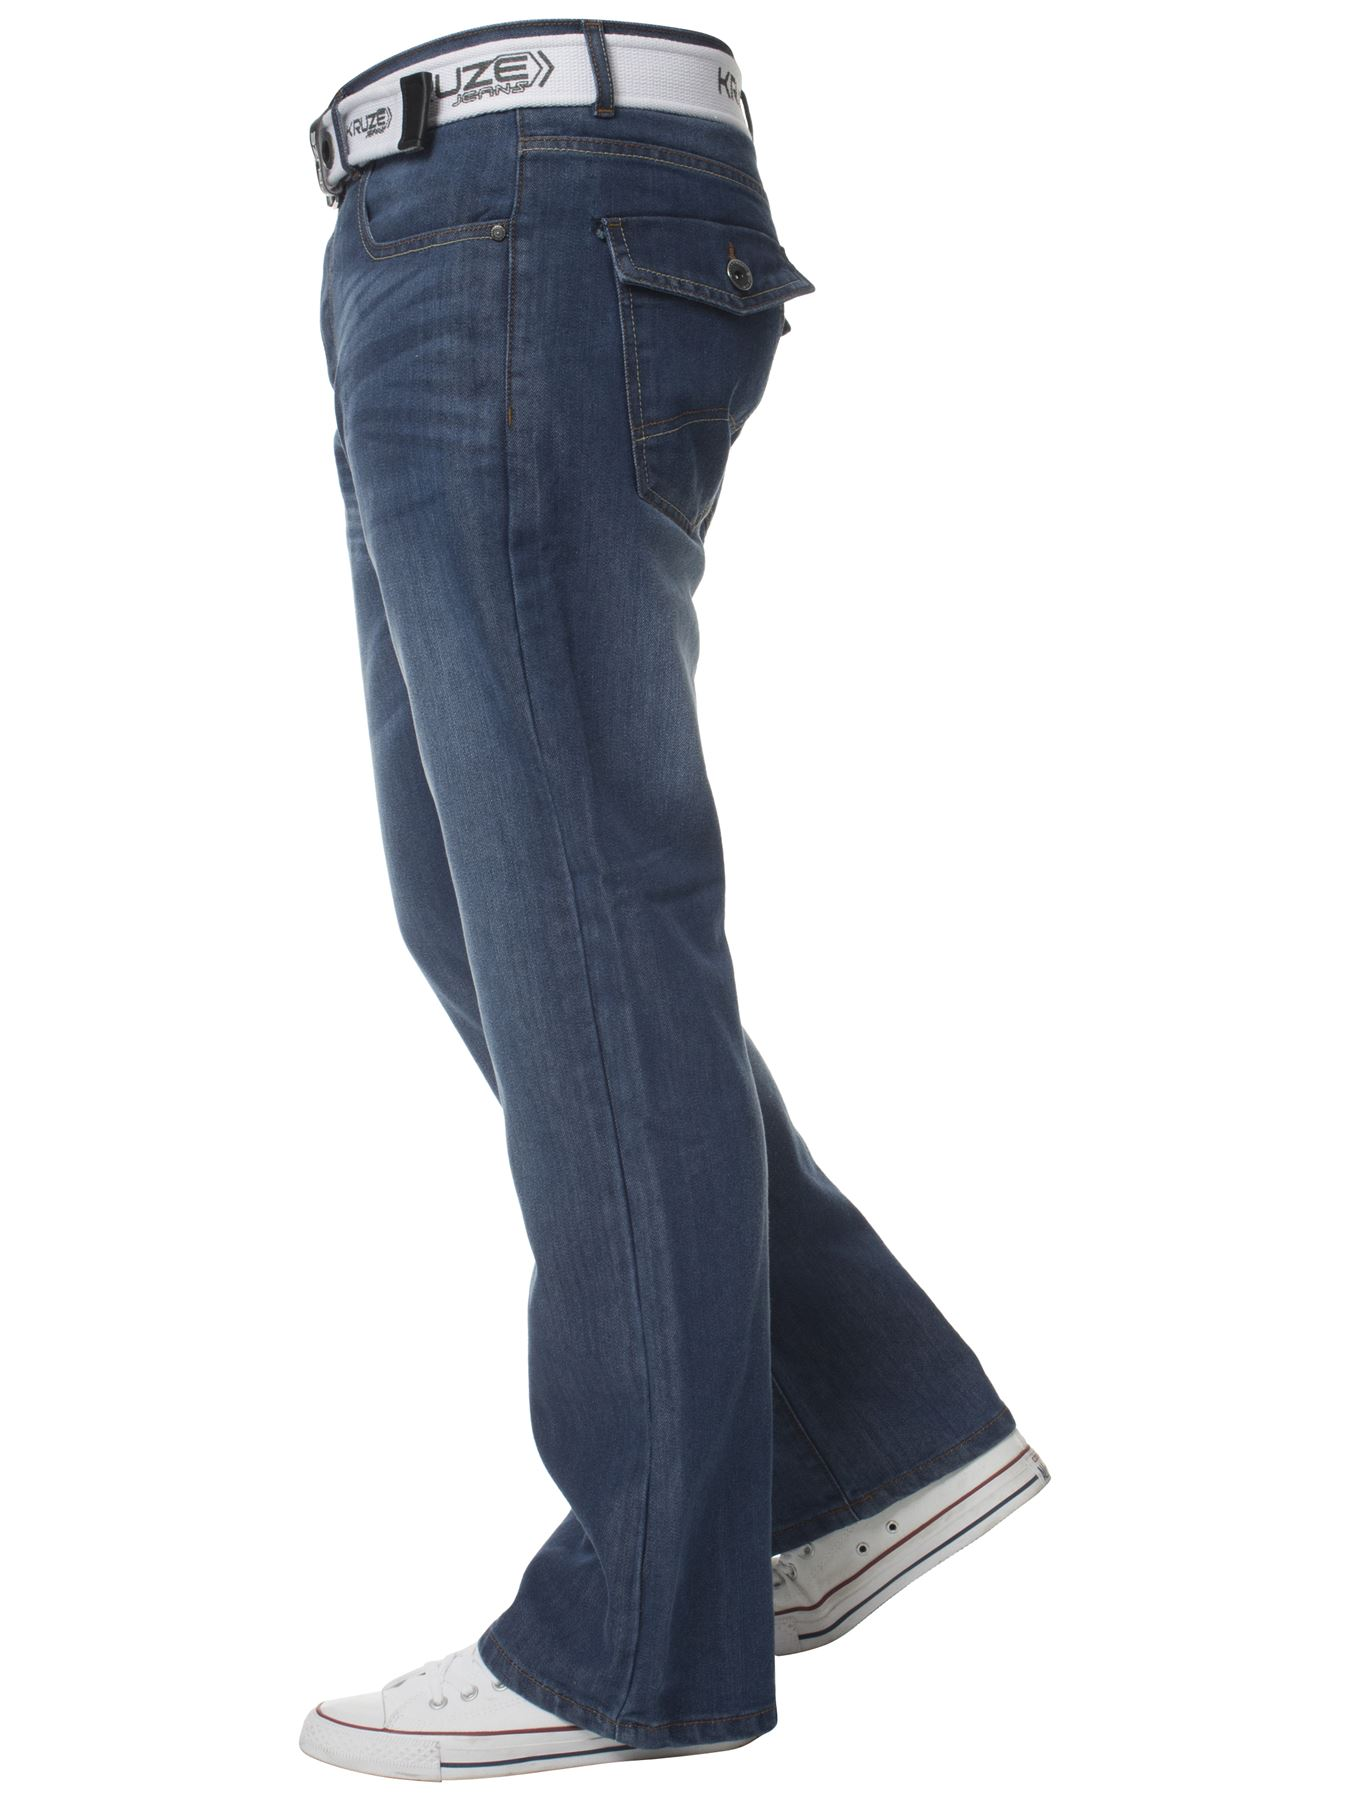 Kruze-Mens-Bootcut-Jeans-Flared-Wide-Leg-Denim-Pants-Big-Tall-King-All-Waists thumbnail 4